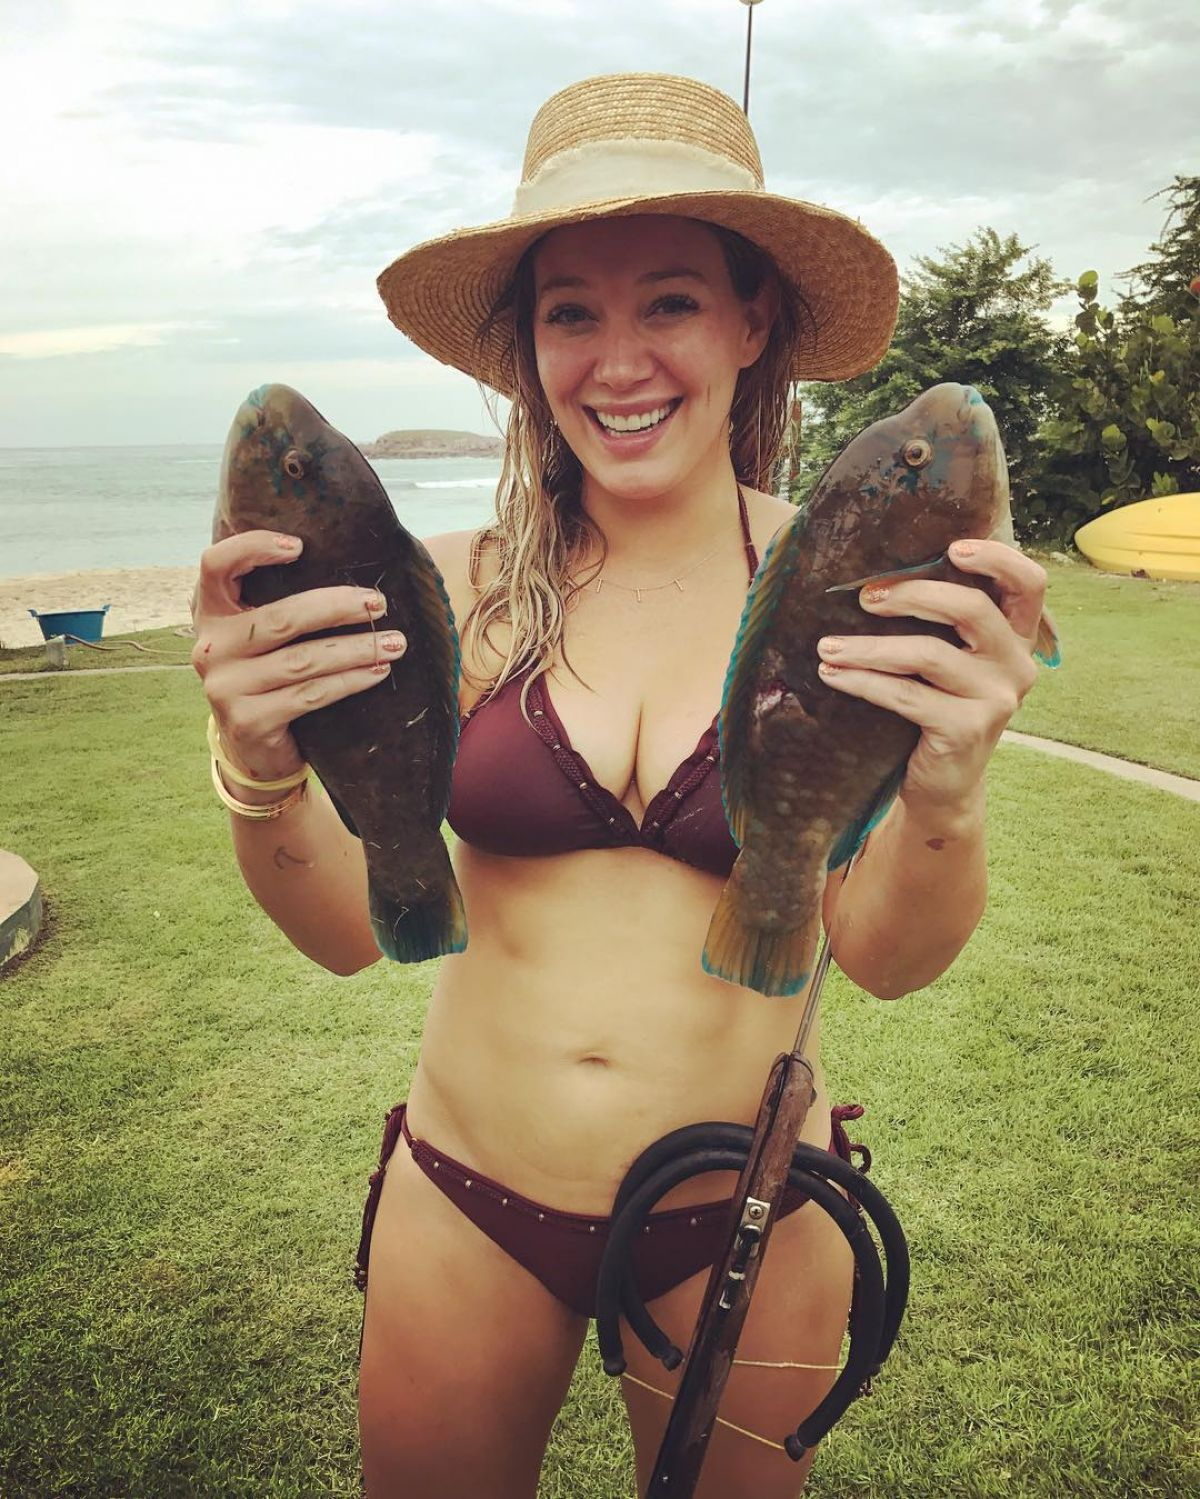 HILARY DUFF in Bikini, 11/12/2016 Instagram Picture